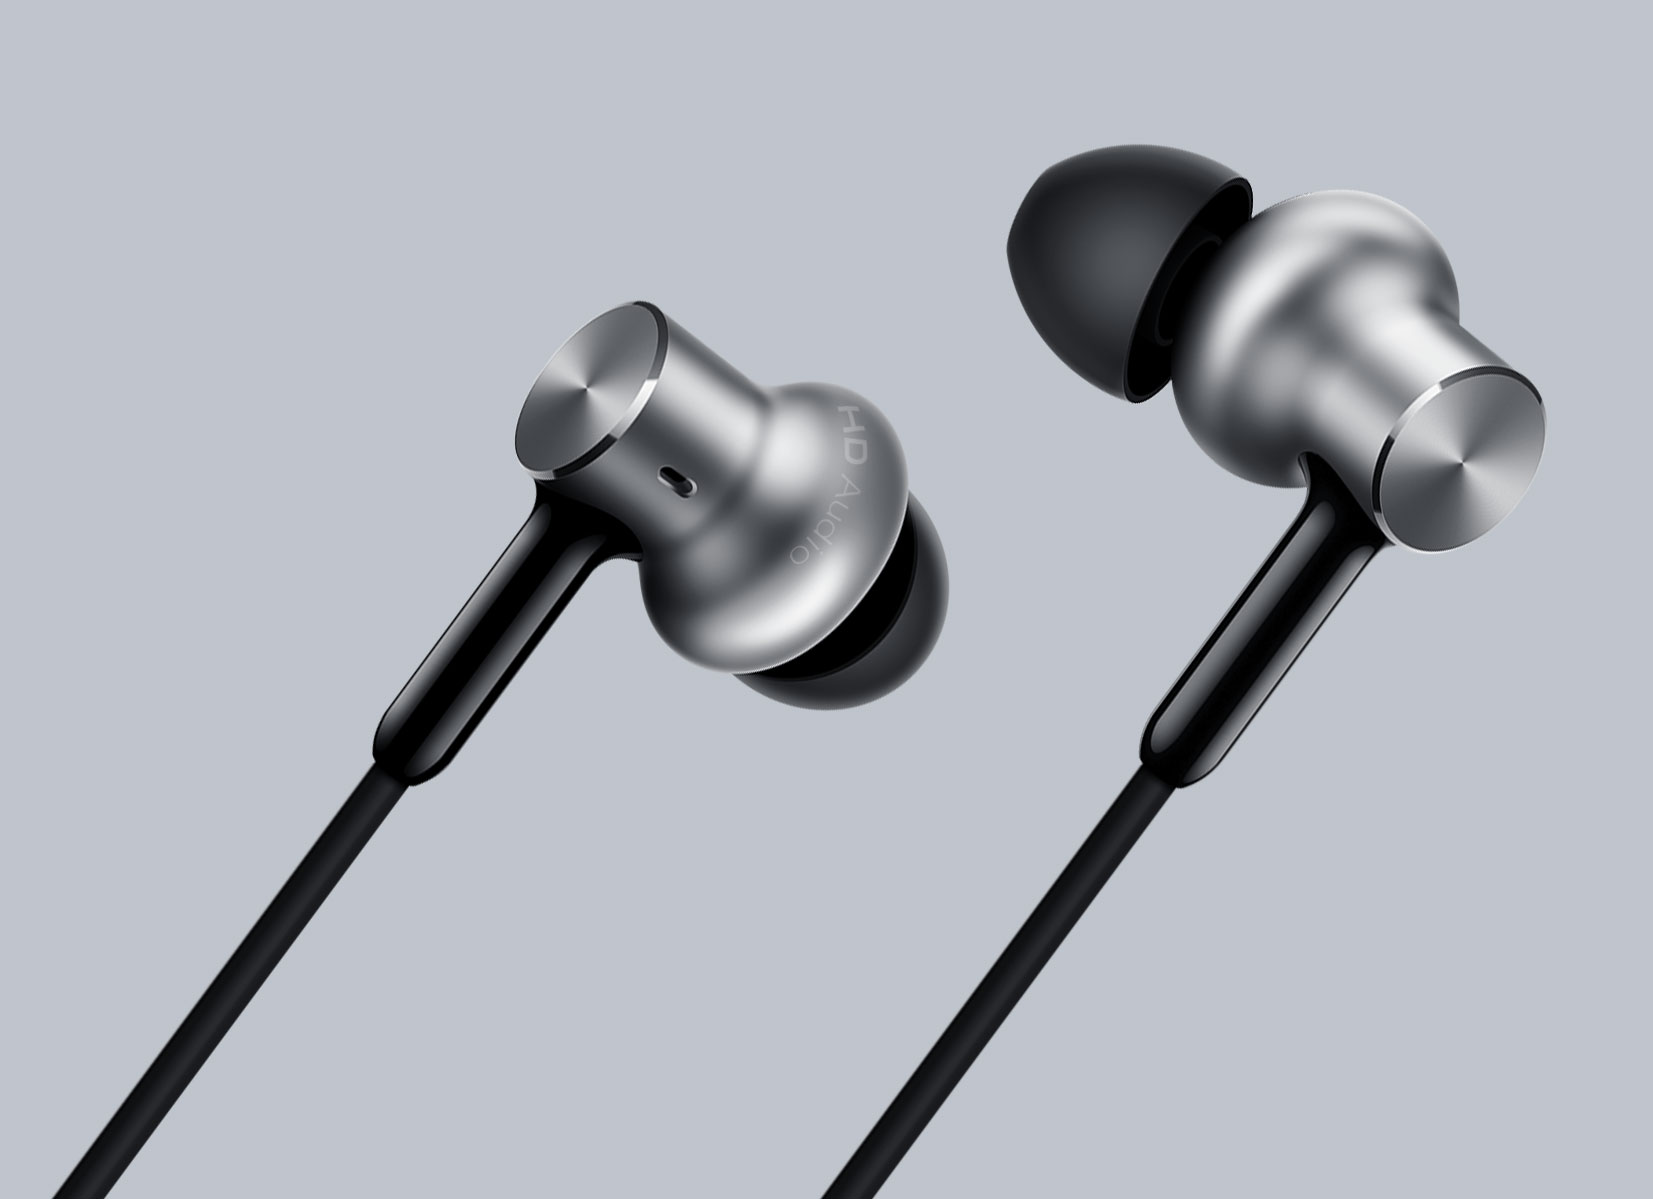 in-ear headphones cause infections